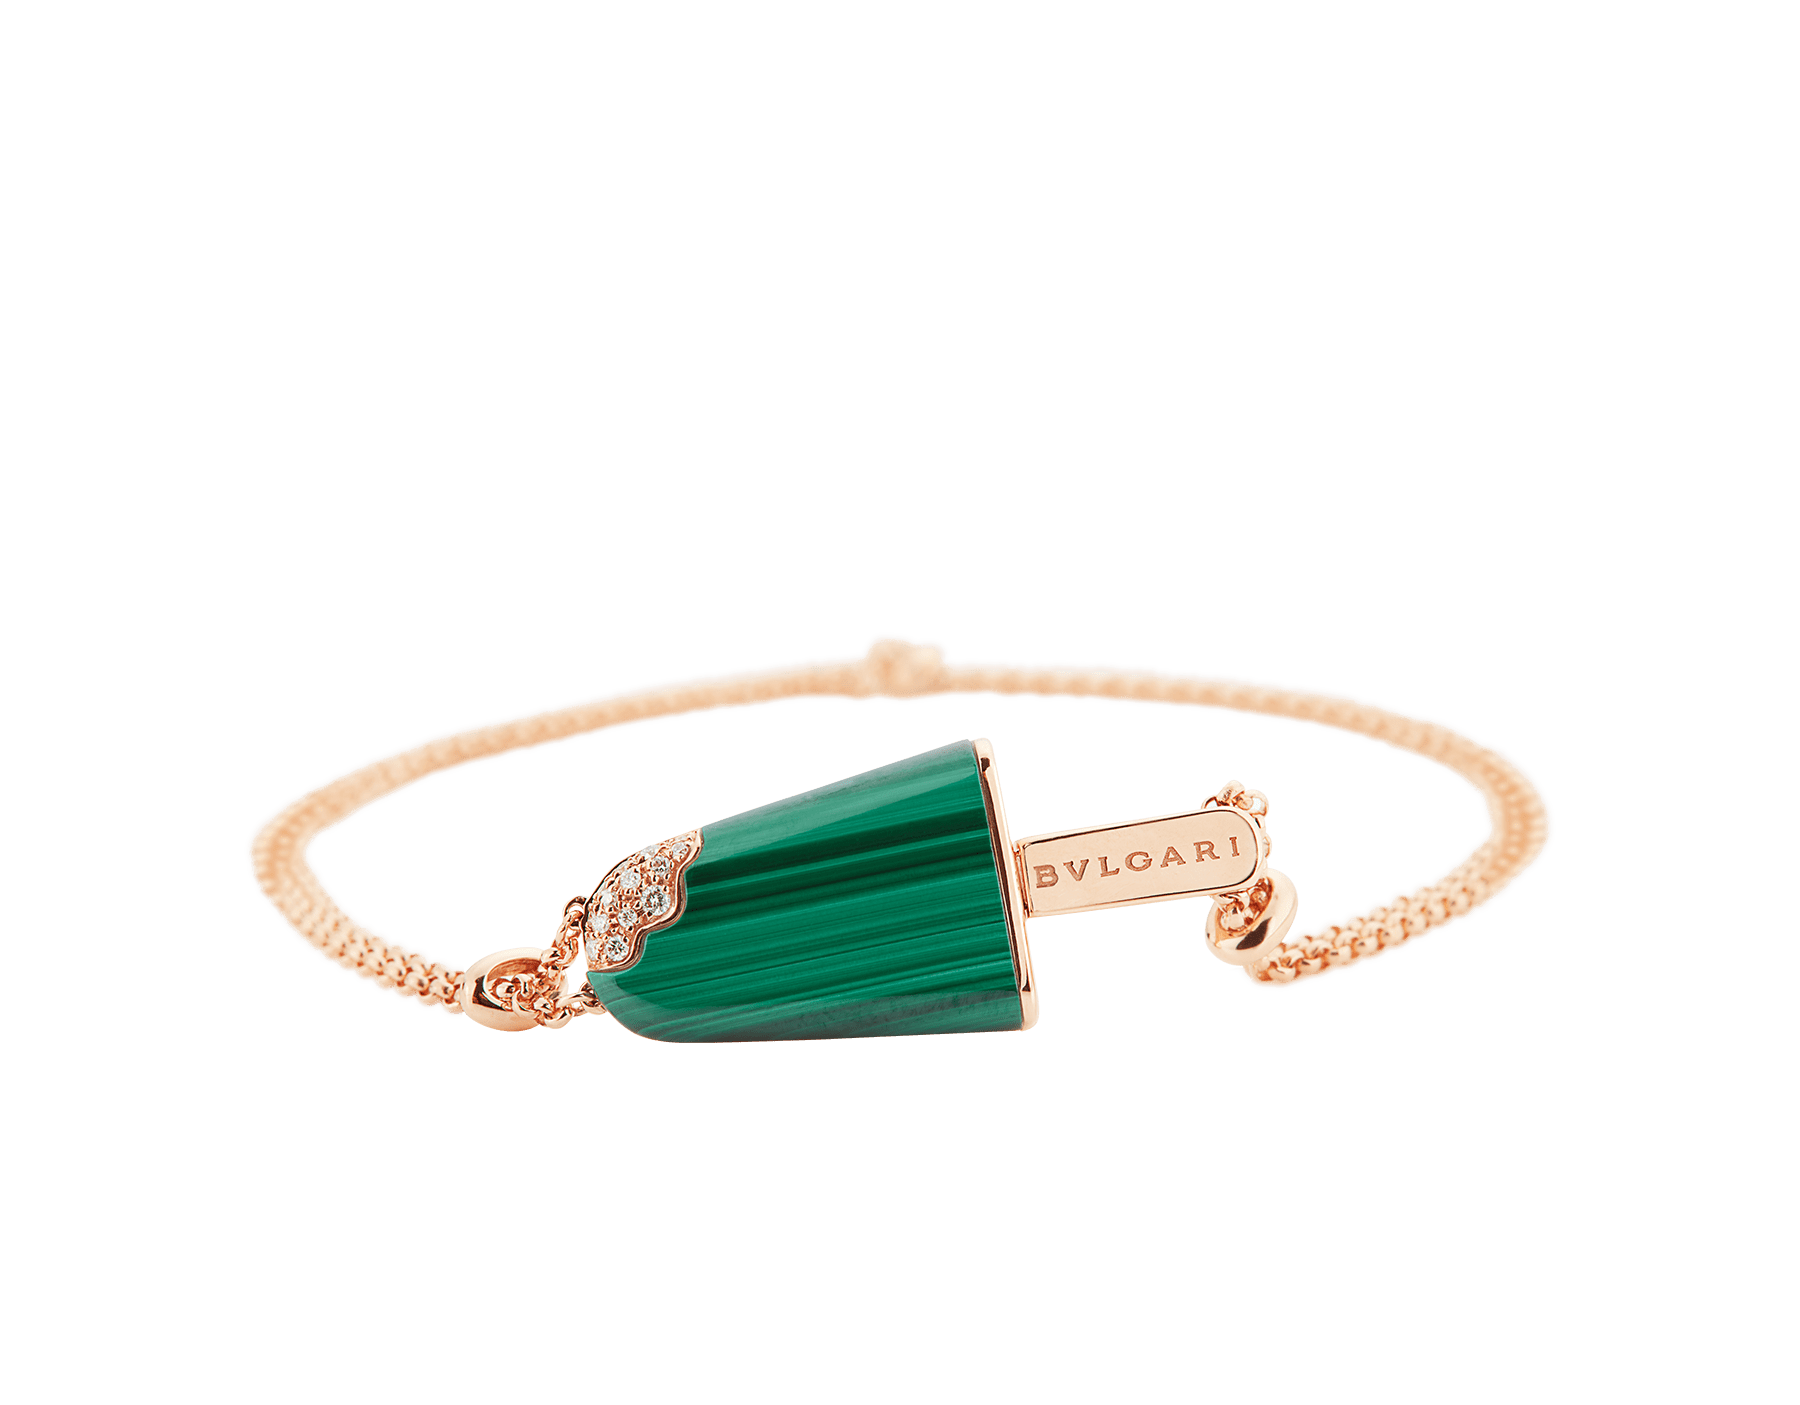 BVLGARI BVLGARI Gelati 18 kt rose gold soft bracelet set with malachite and pavé diamonds BR858327 image 3